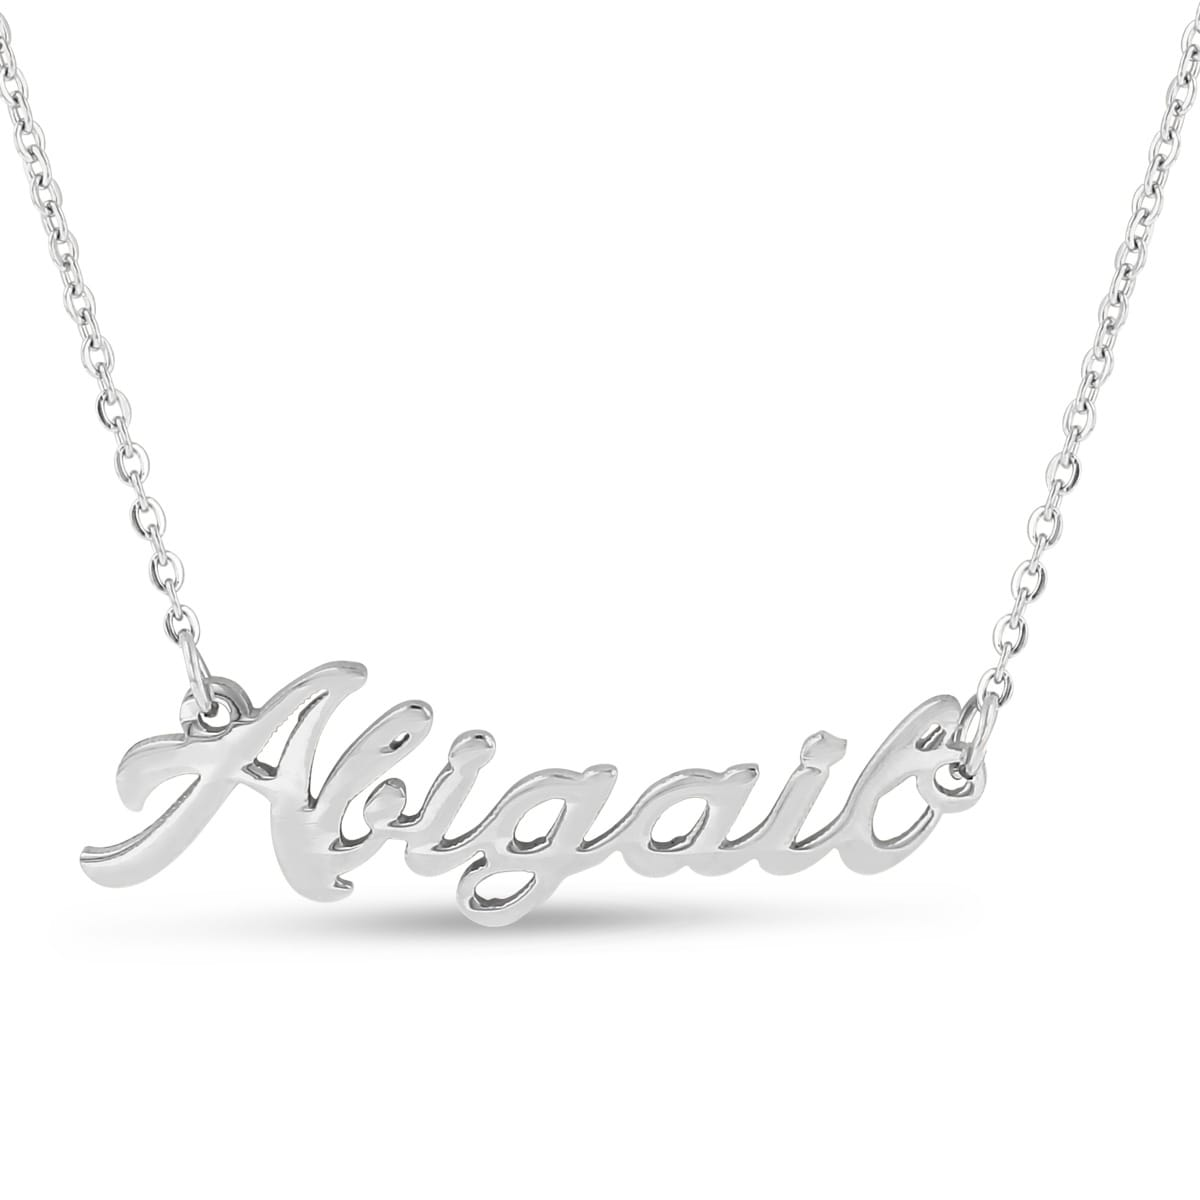 Silver Personalized Name Necklace, 100 Names Available Immediately